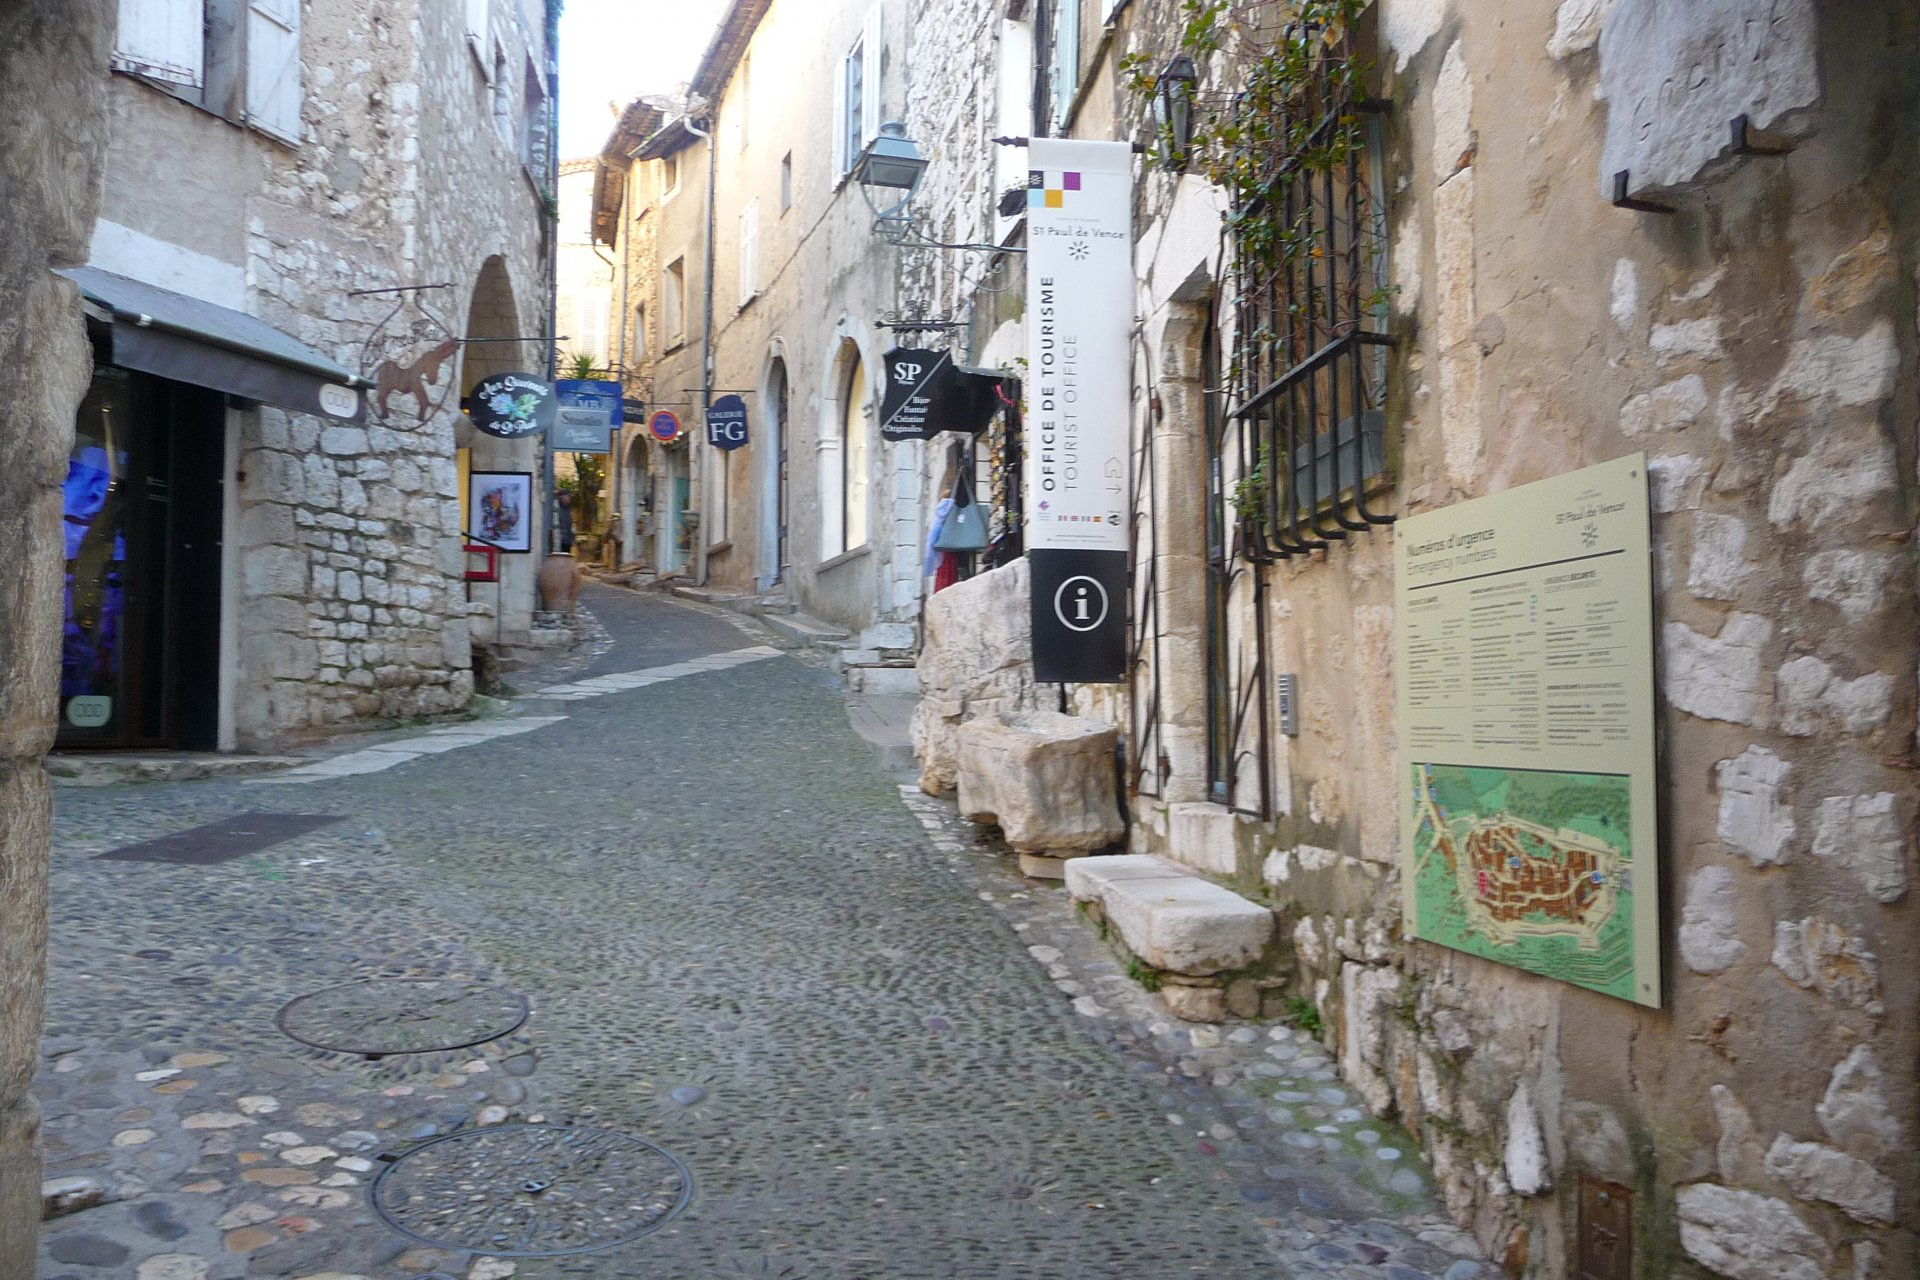 In the village of Saint-Paul de Vence